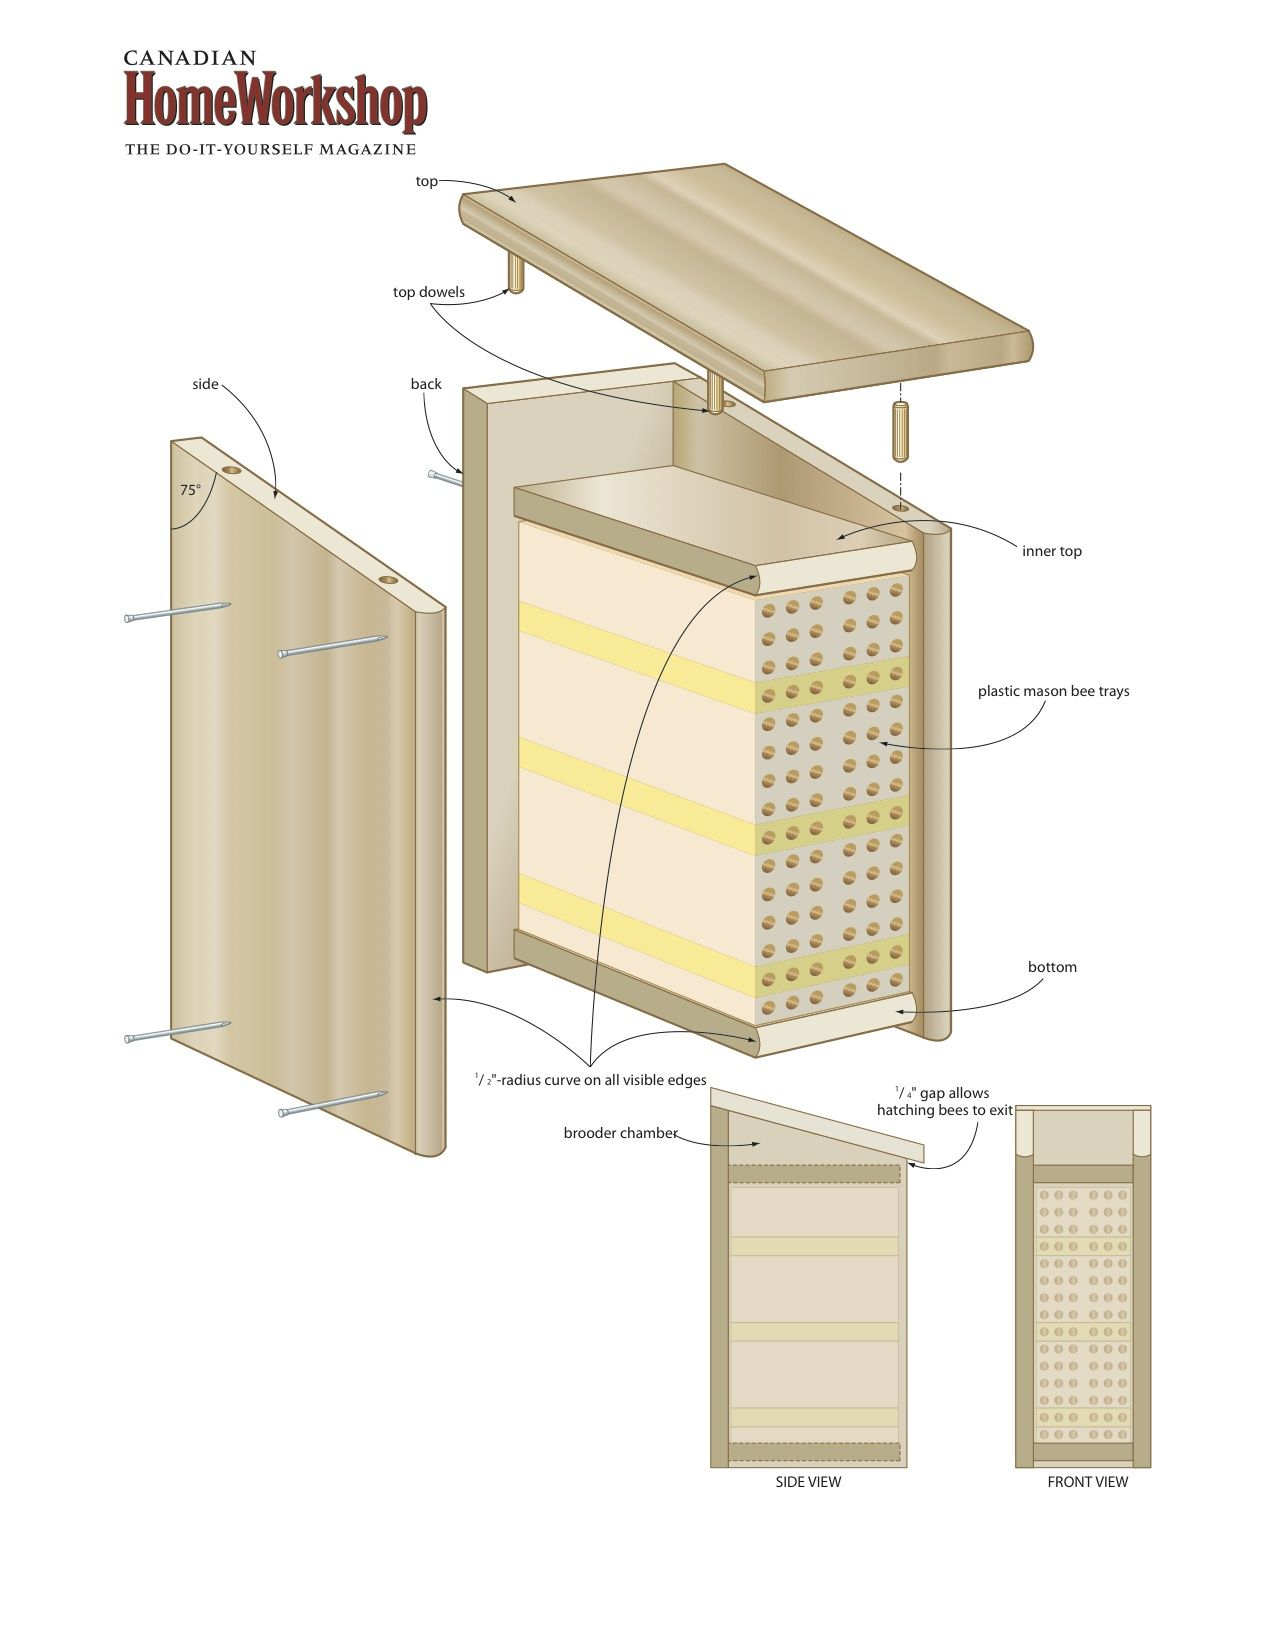 woodworking plans for bee boxes should you want to learn woodworking skills